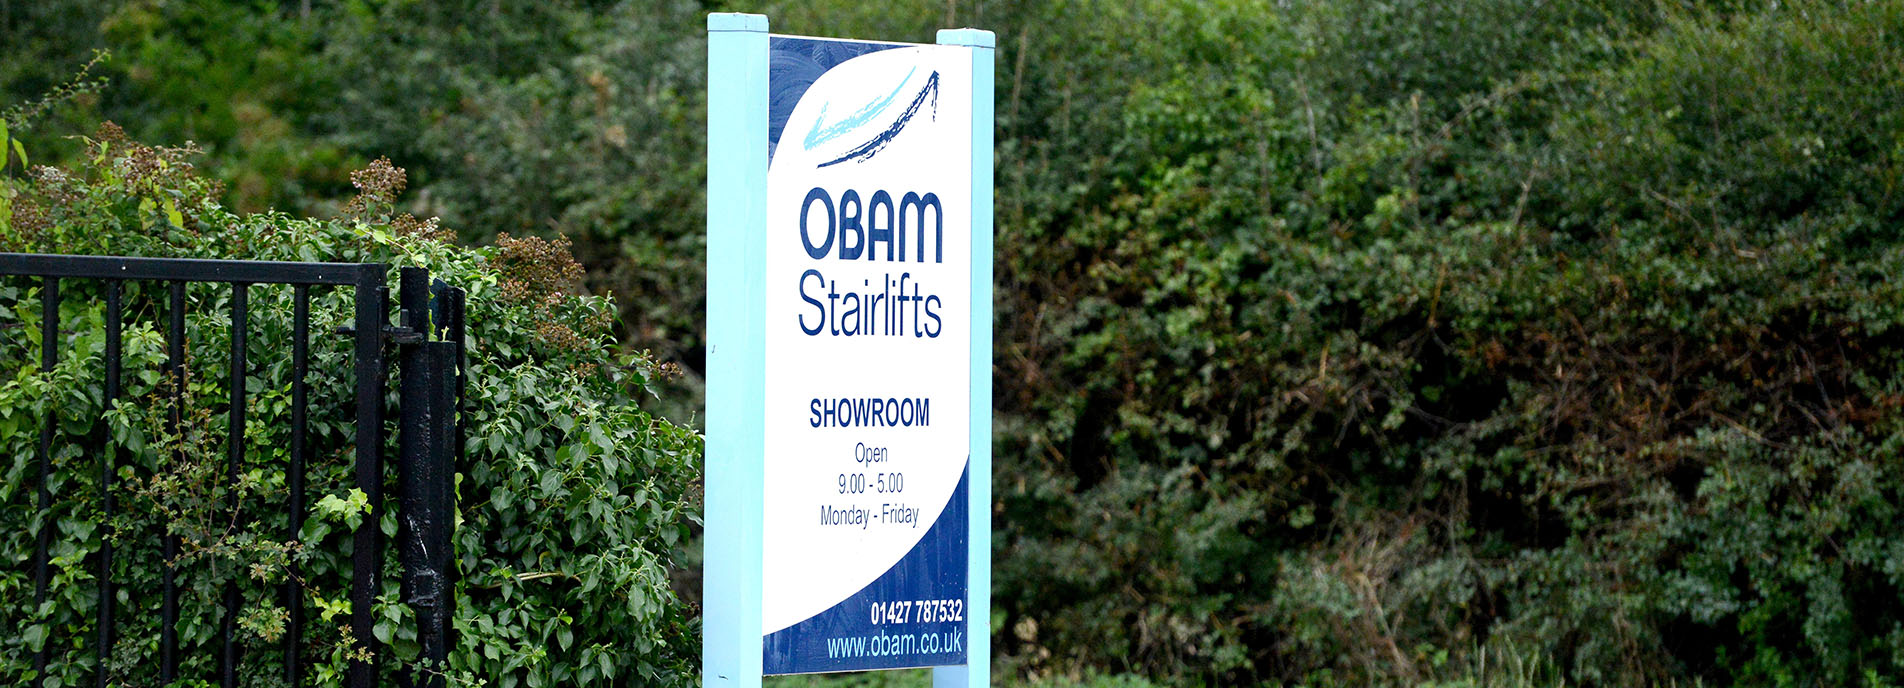 Obam Stairlifts